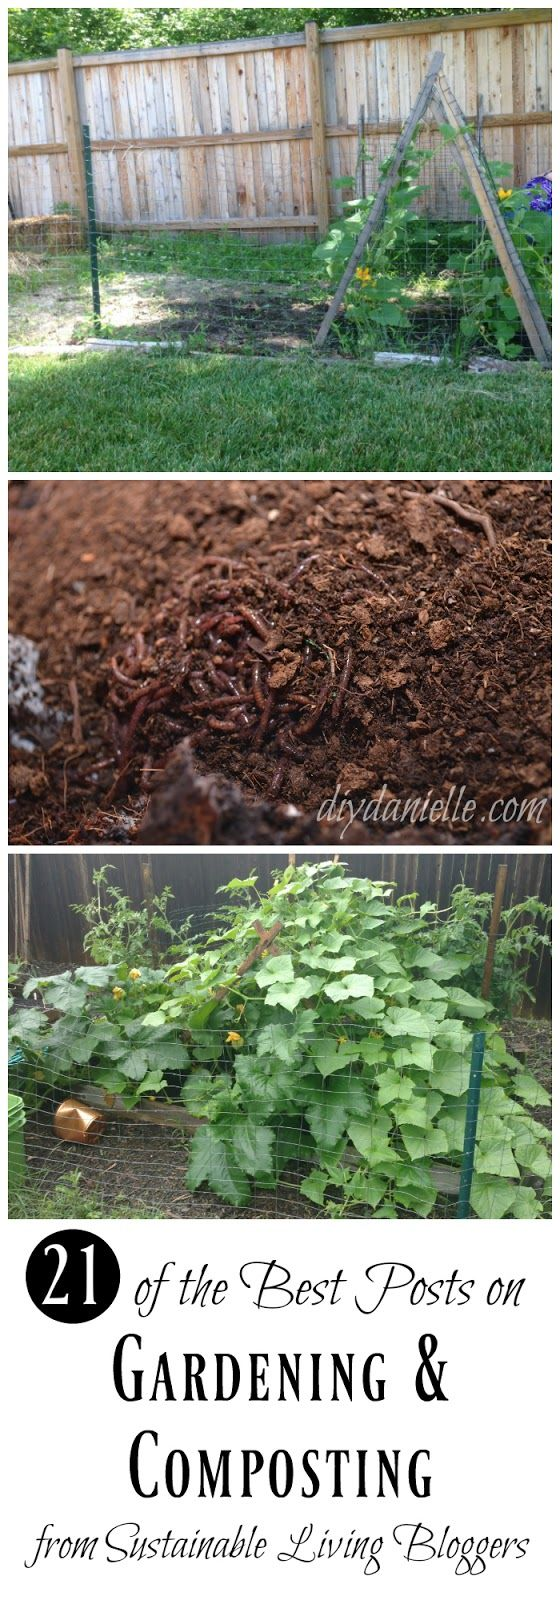 Gardening and Composting: 21 posts that cover everything from edible weeds to biosolid compost.